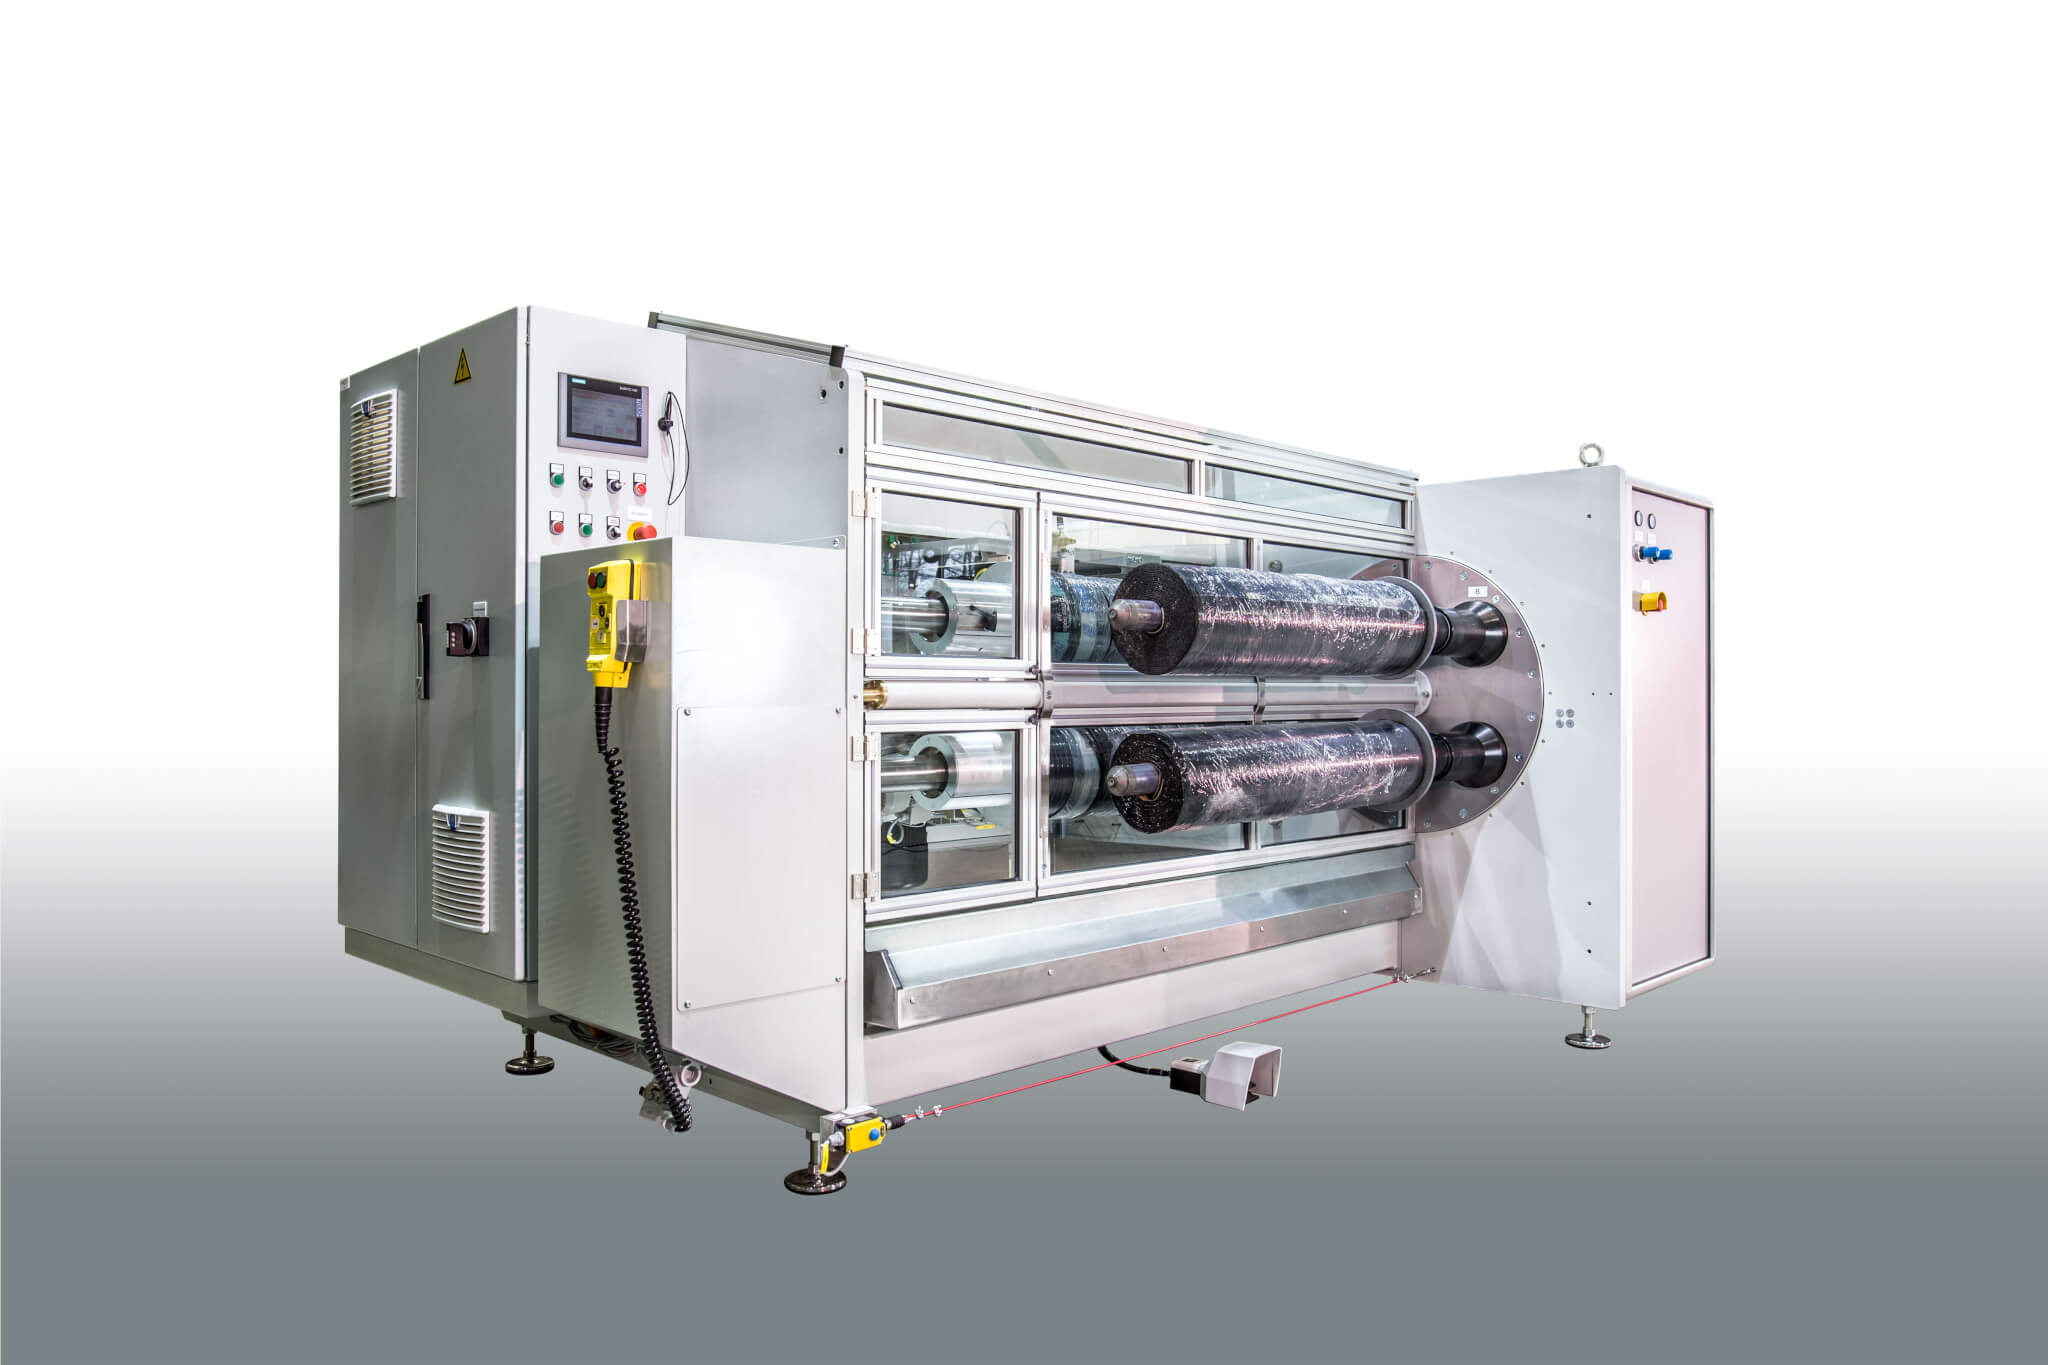 insulating web cutting machine DPM 1100 with 4 cutting shafts